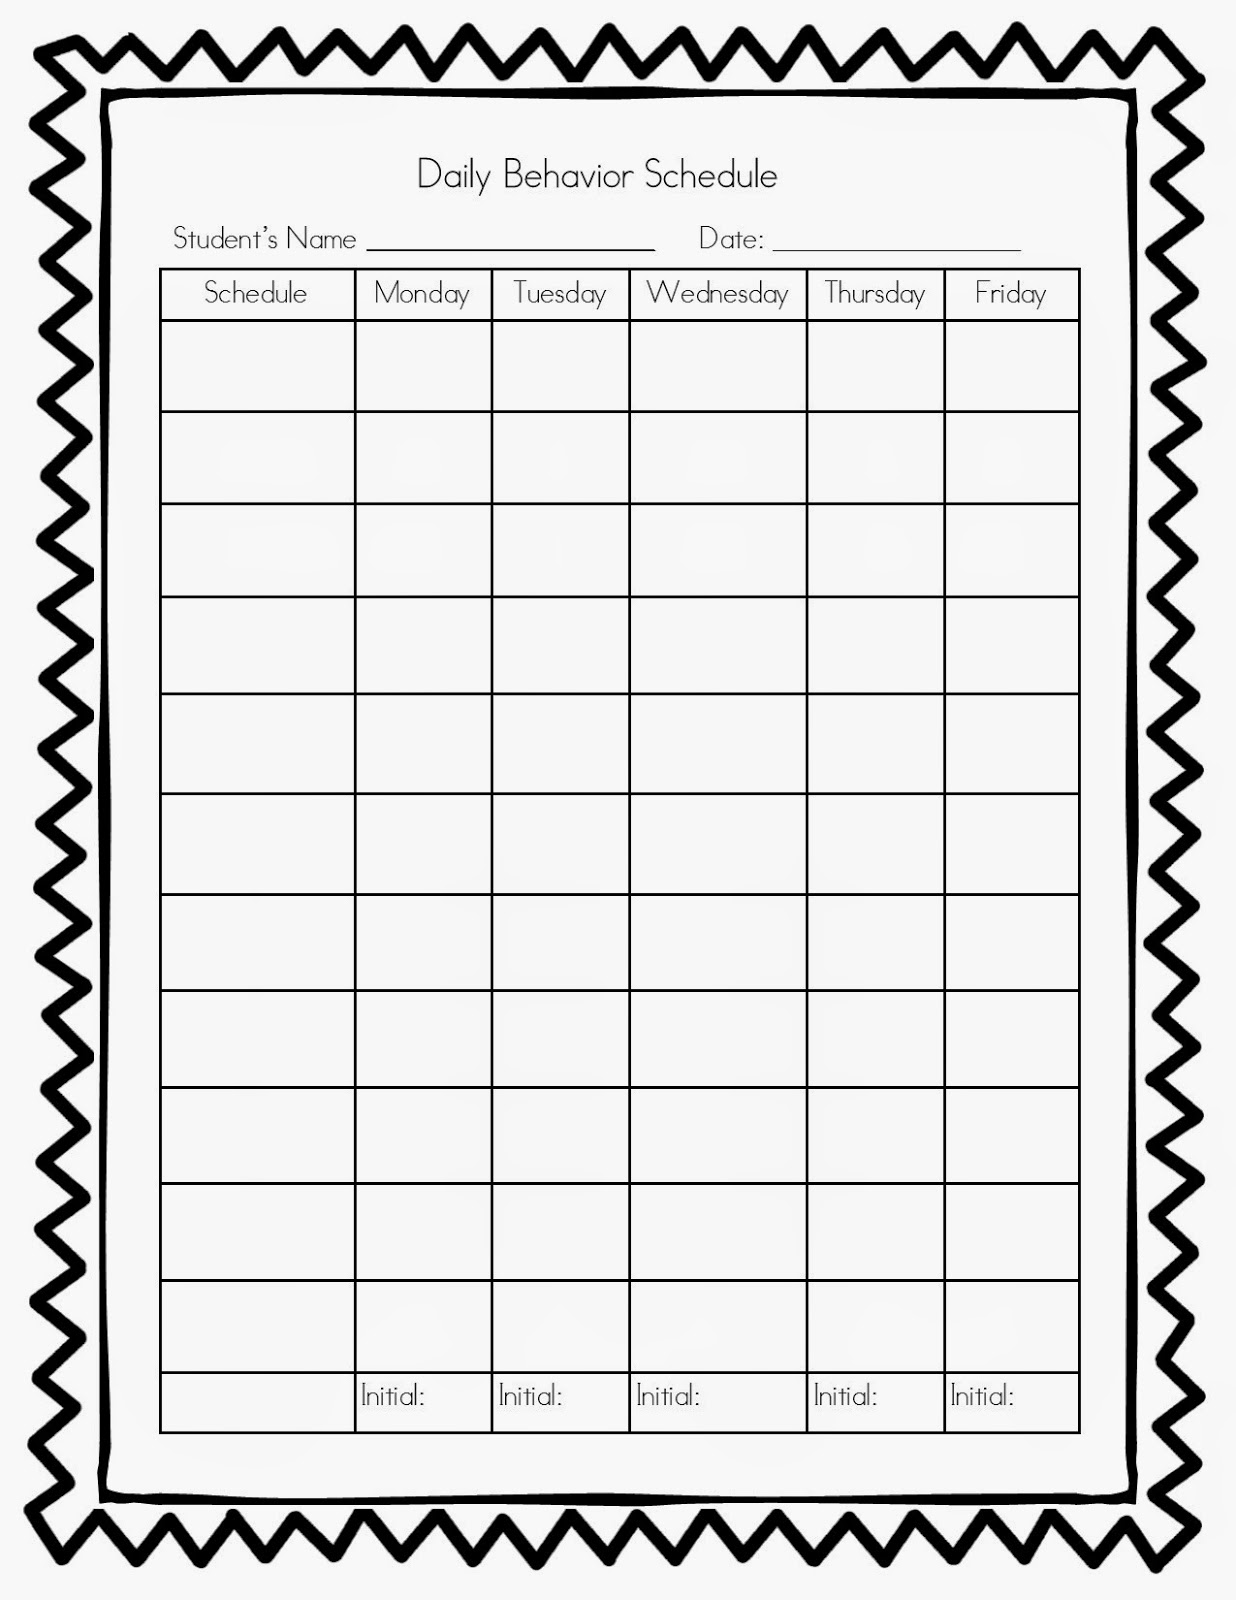 ... Classroom Management, Behavior Chart, Behavior Log, and Sticker Charts